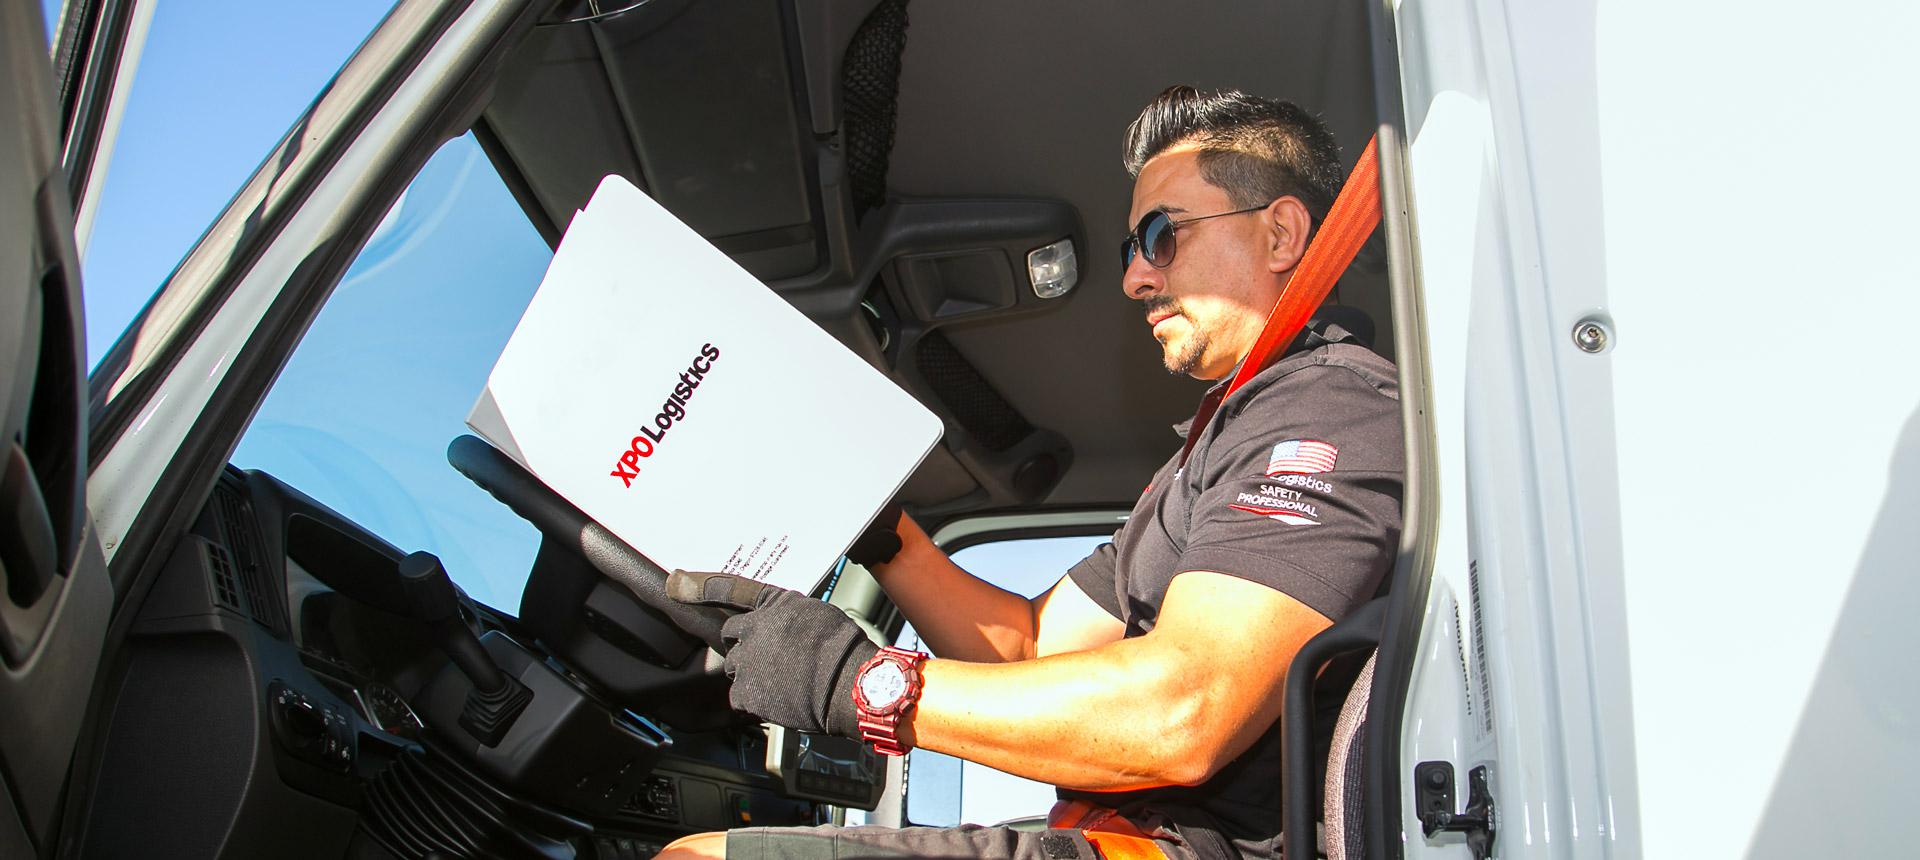 XPO driver reviews documents in truck cab